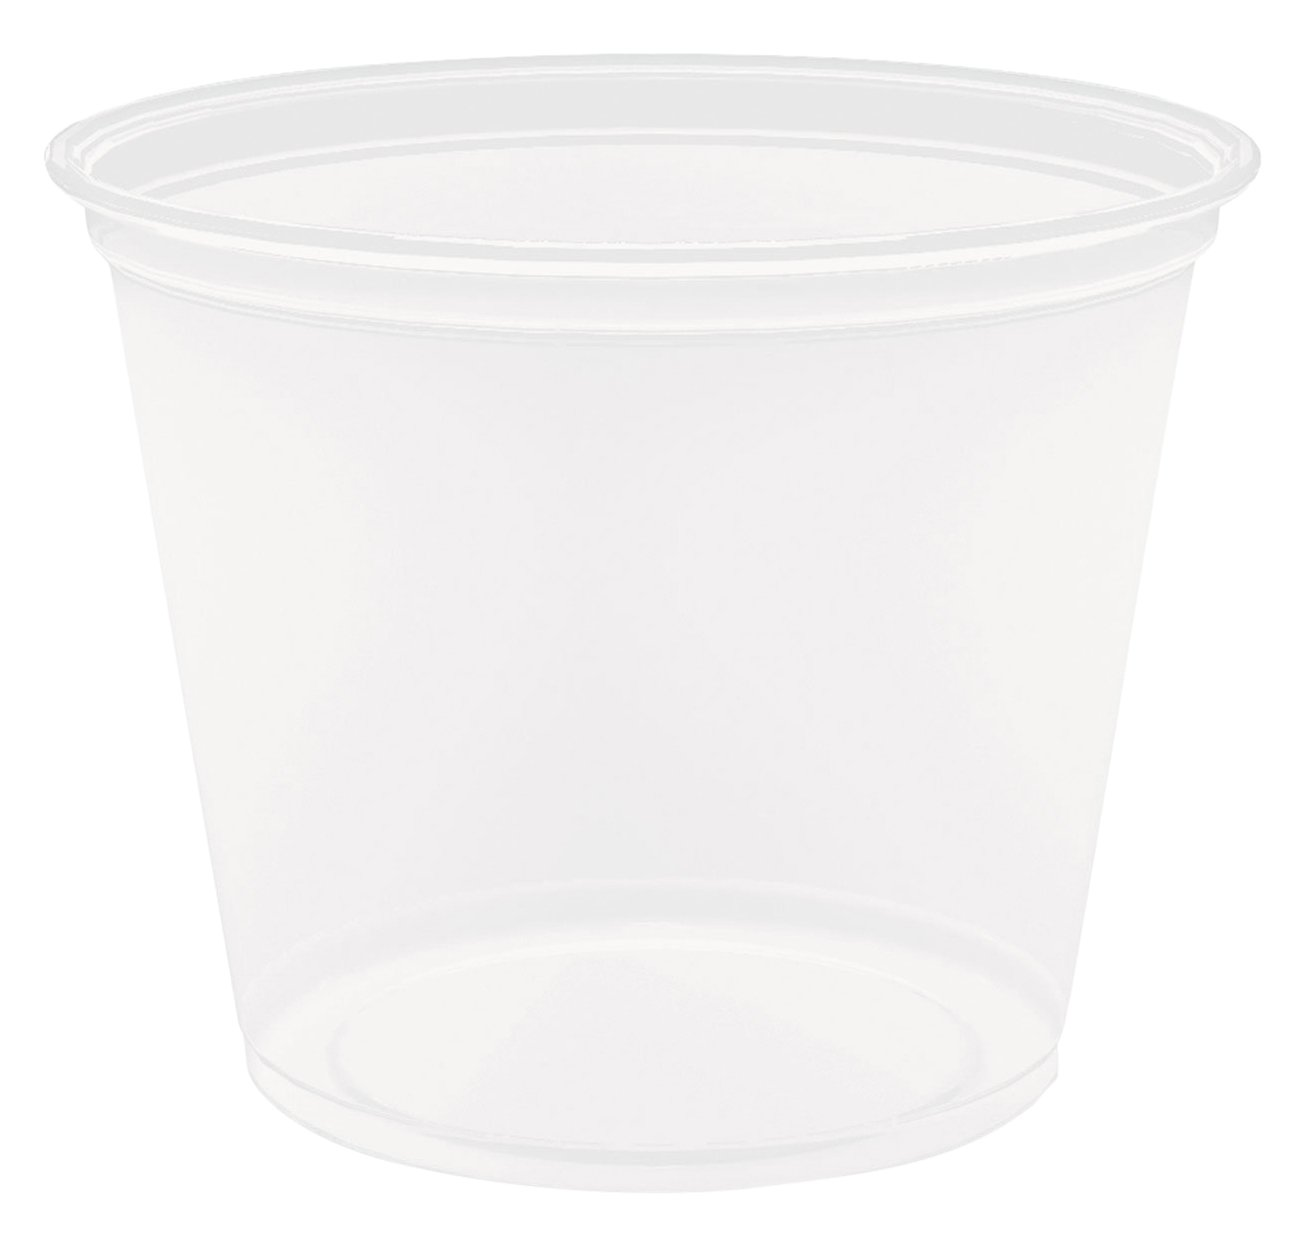 Dart 550PC 5.5 oz Clear PP Portion Container (Case of 2500) by DART